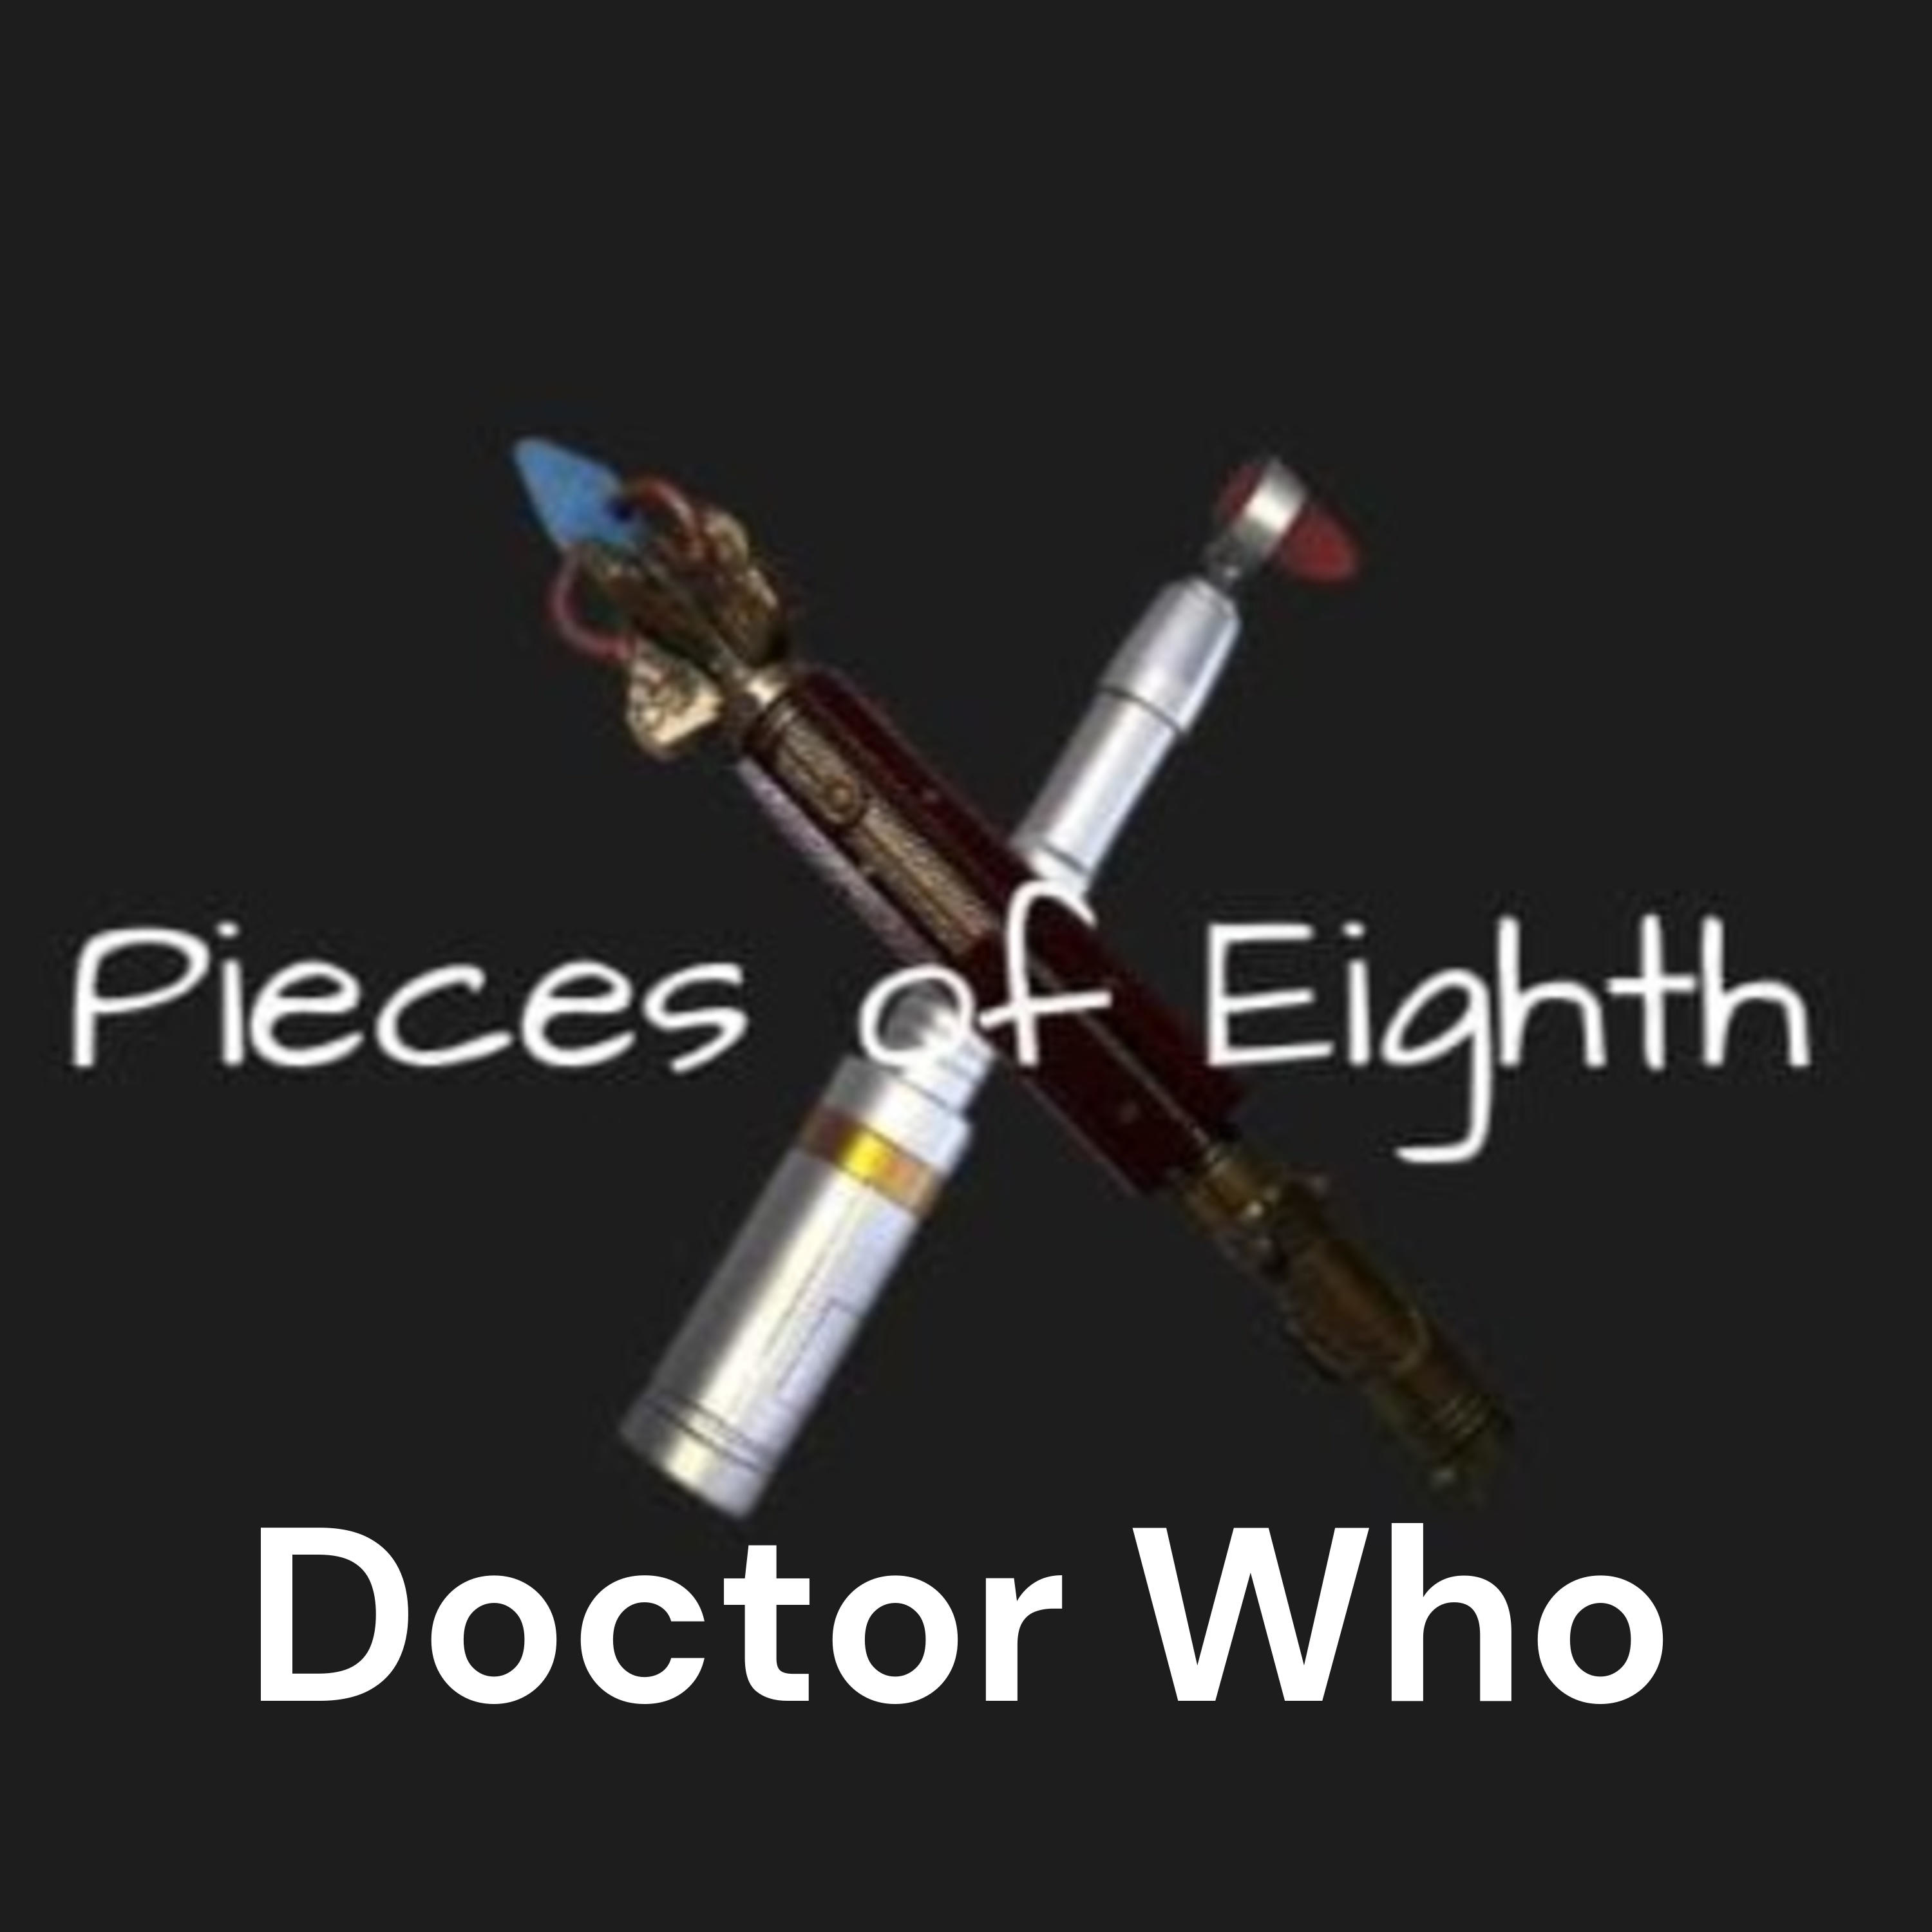 Doctor Who - Pieces of Eighth